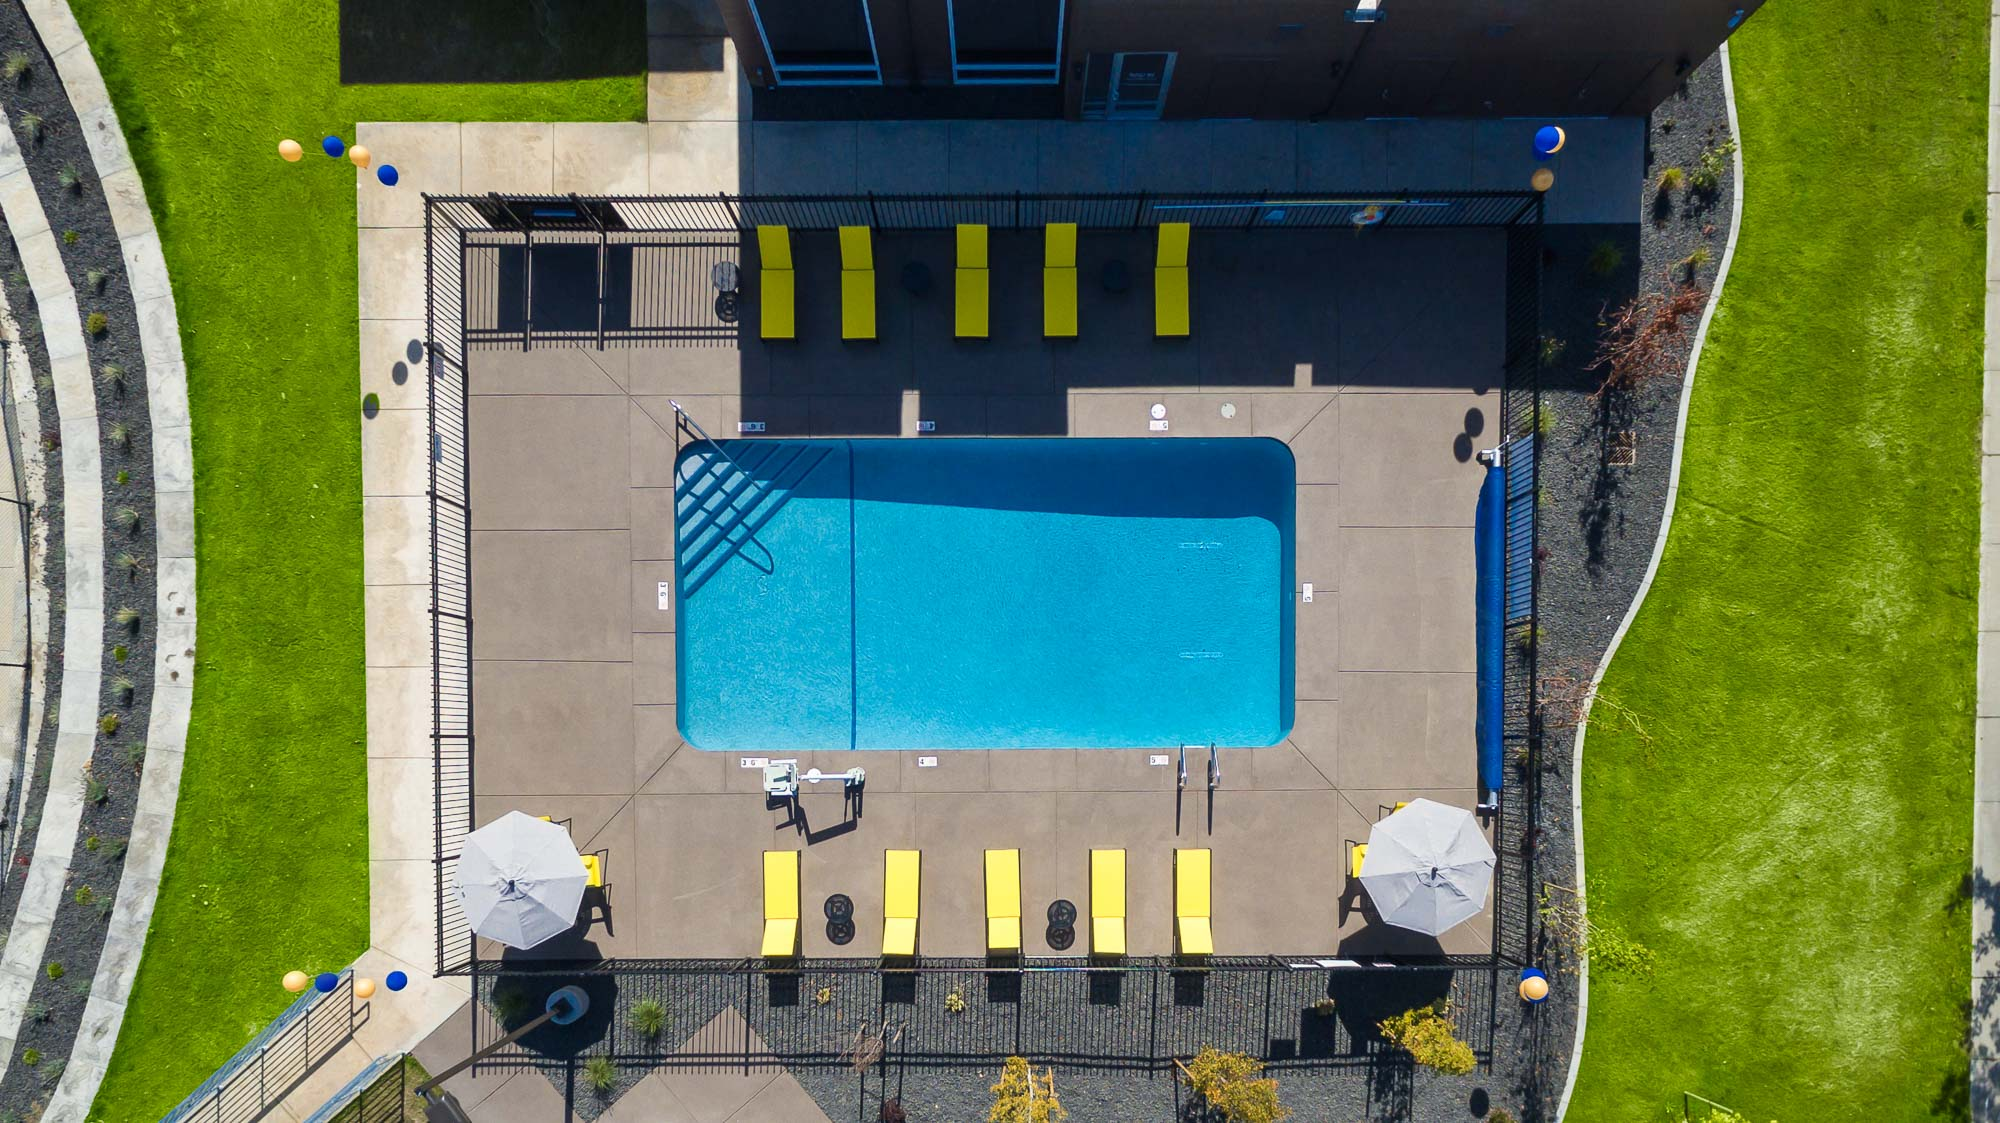 Jake at Indian Trail Aerial Drone Photography in Spokane